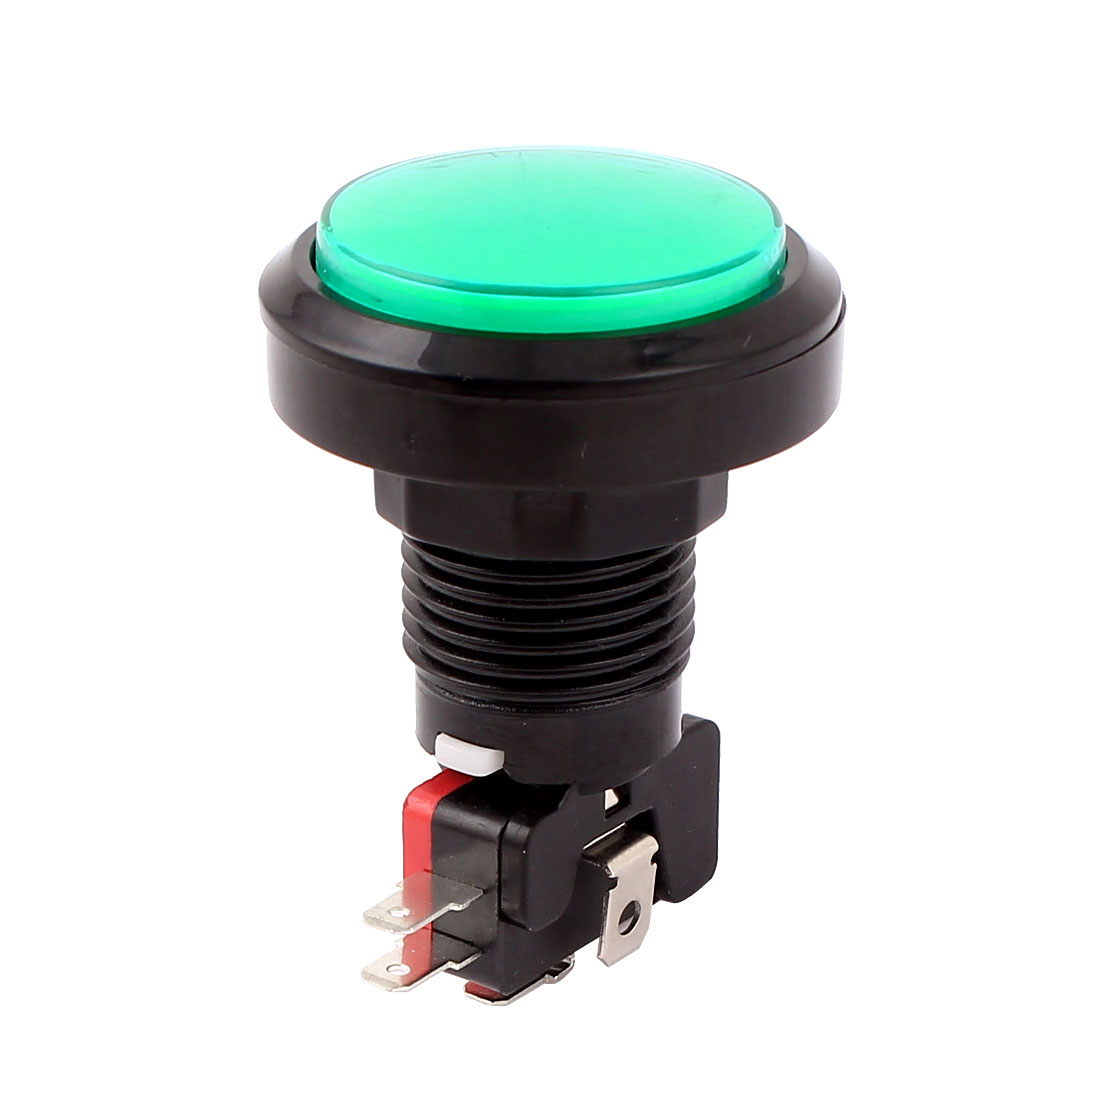 SPDT Momentary 22mm Green Lamp Push Button Micro Switch for Arcade Game